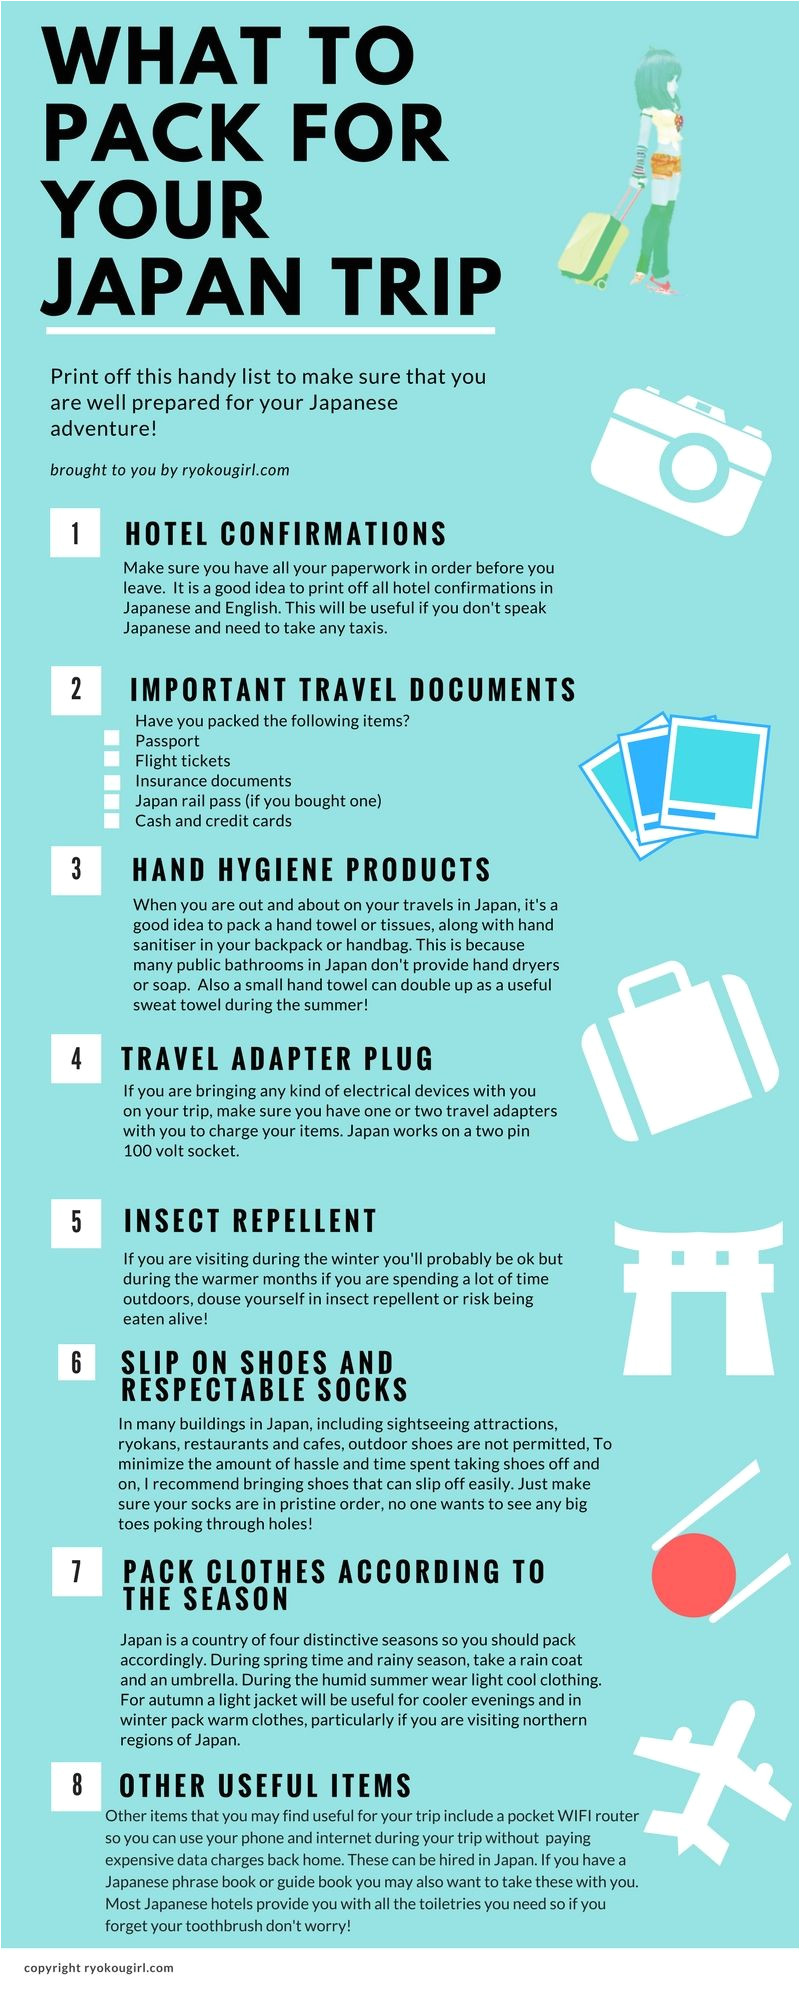 Japanese Business Card Name order Check Out This Super Useful Guide On What to Pack for Your